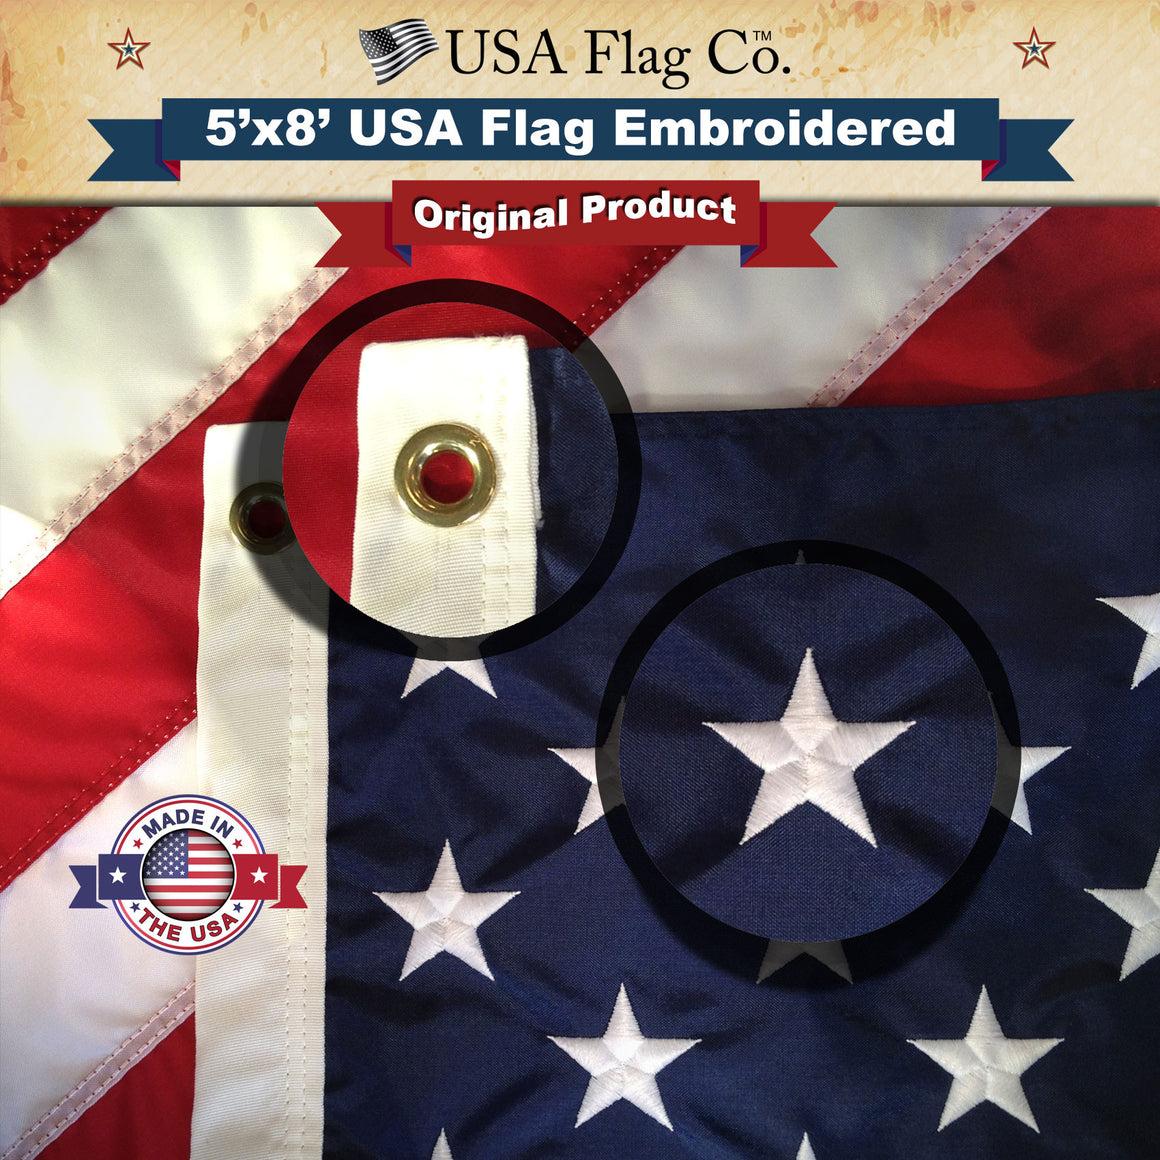 American Flags Made in USA